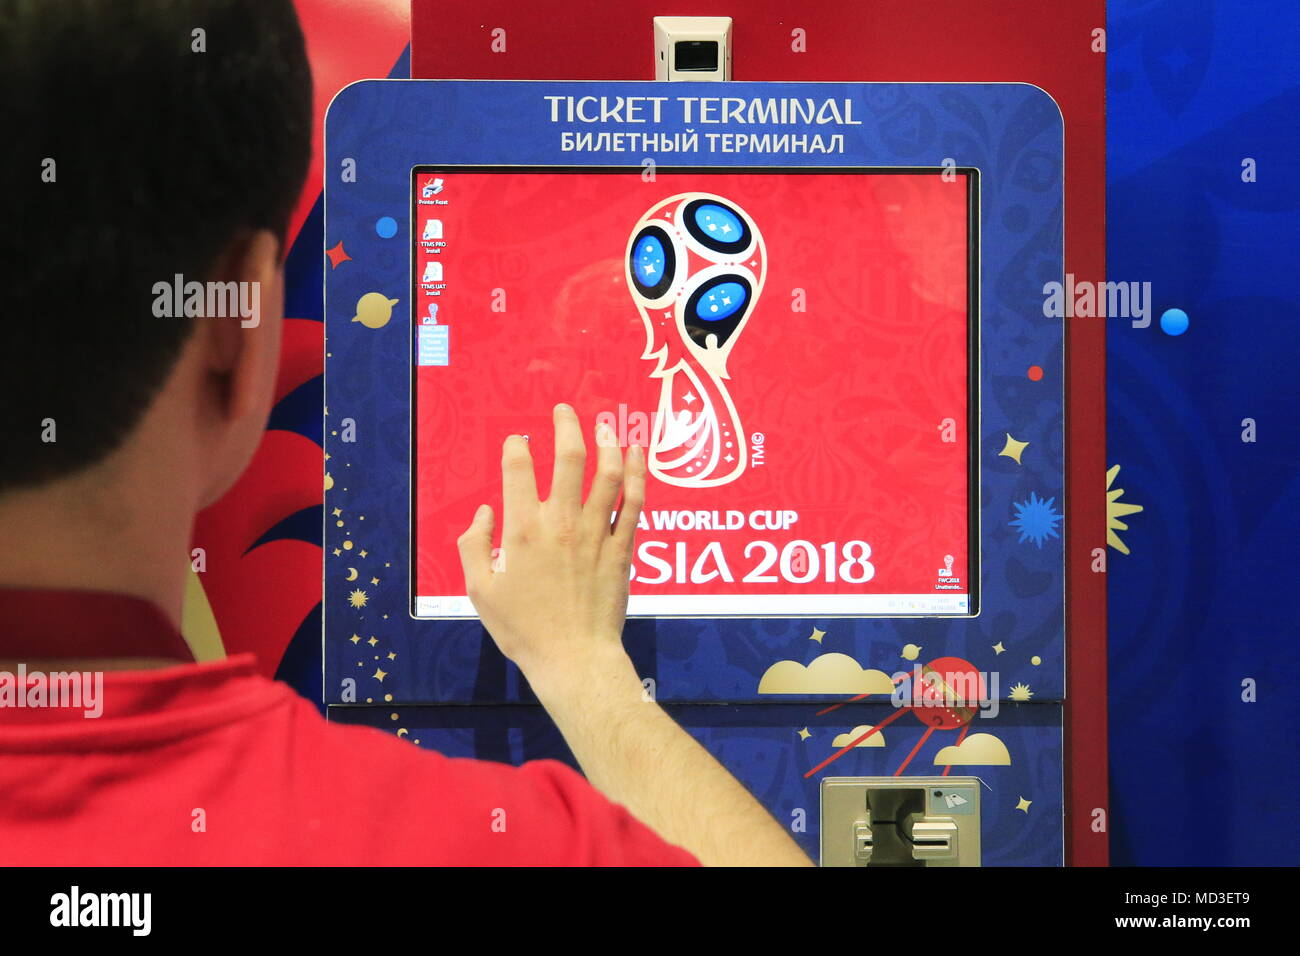 Cool Final World Cup 2018 - rostov-on-don-russia-april-18-2018-a-person-uses-a-ticket-terminal-at-a-fifa-ticket-centre-which-has-launched-the-final-ticket-sales-for-the-2018-fifa-world-cup-valery-matytsintass-MD3ET9  Collection_864899 .jpg